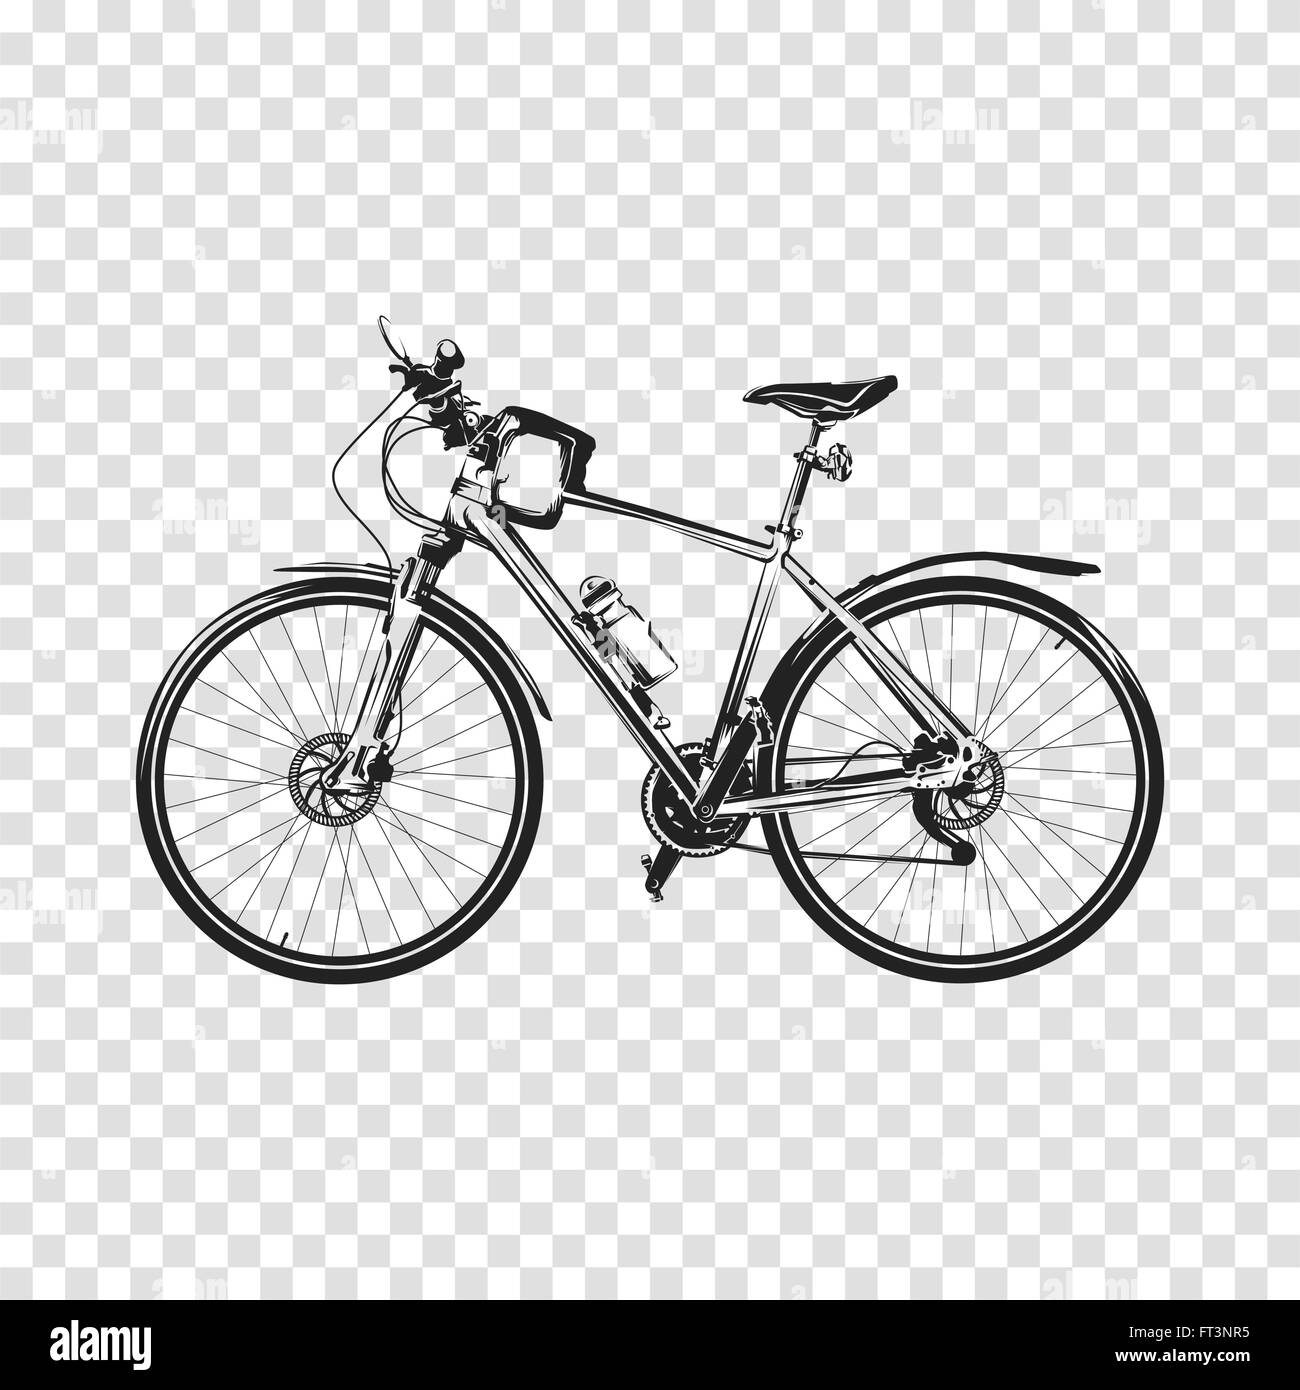 bike a transparent background bicycle silhouette illustration vector stock vector art. Black Bedroom Furniture Sets. Home Design Ideas